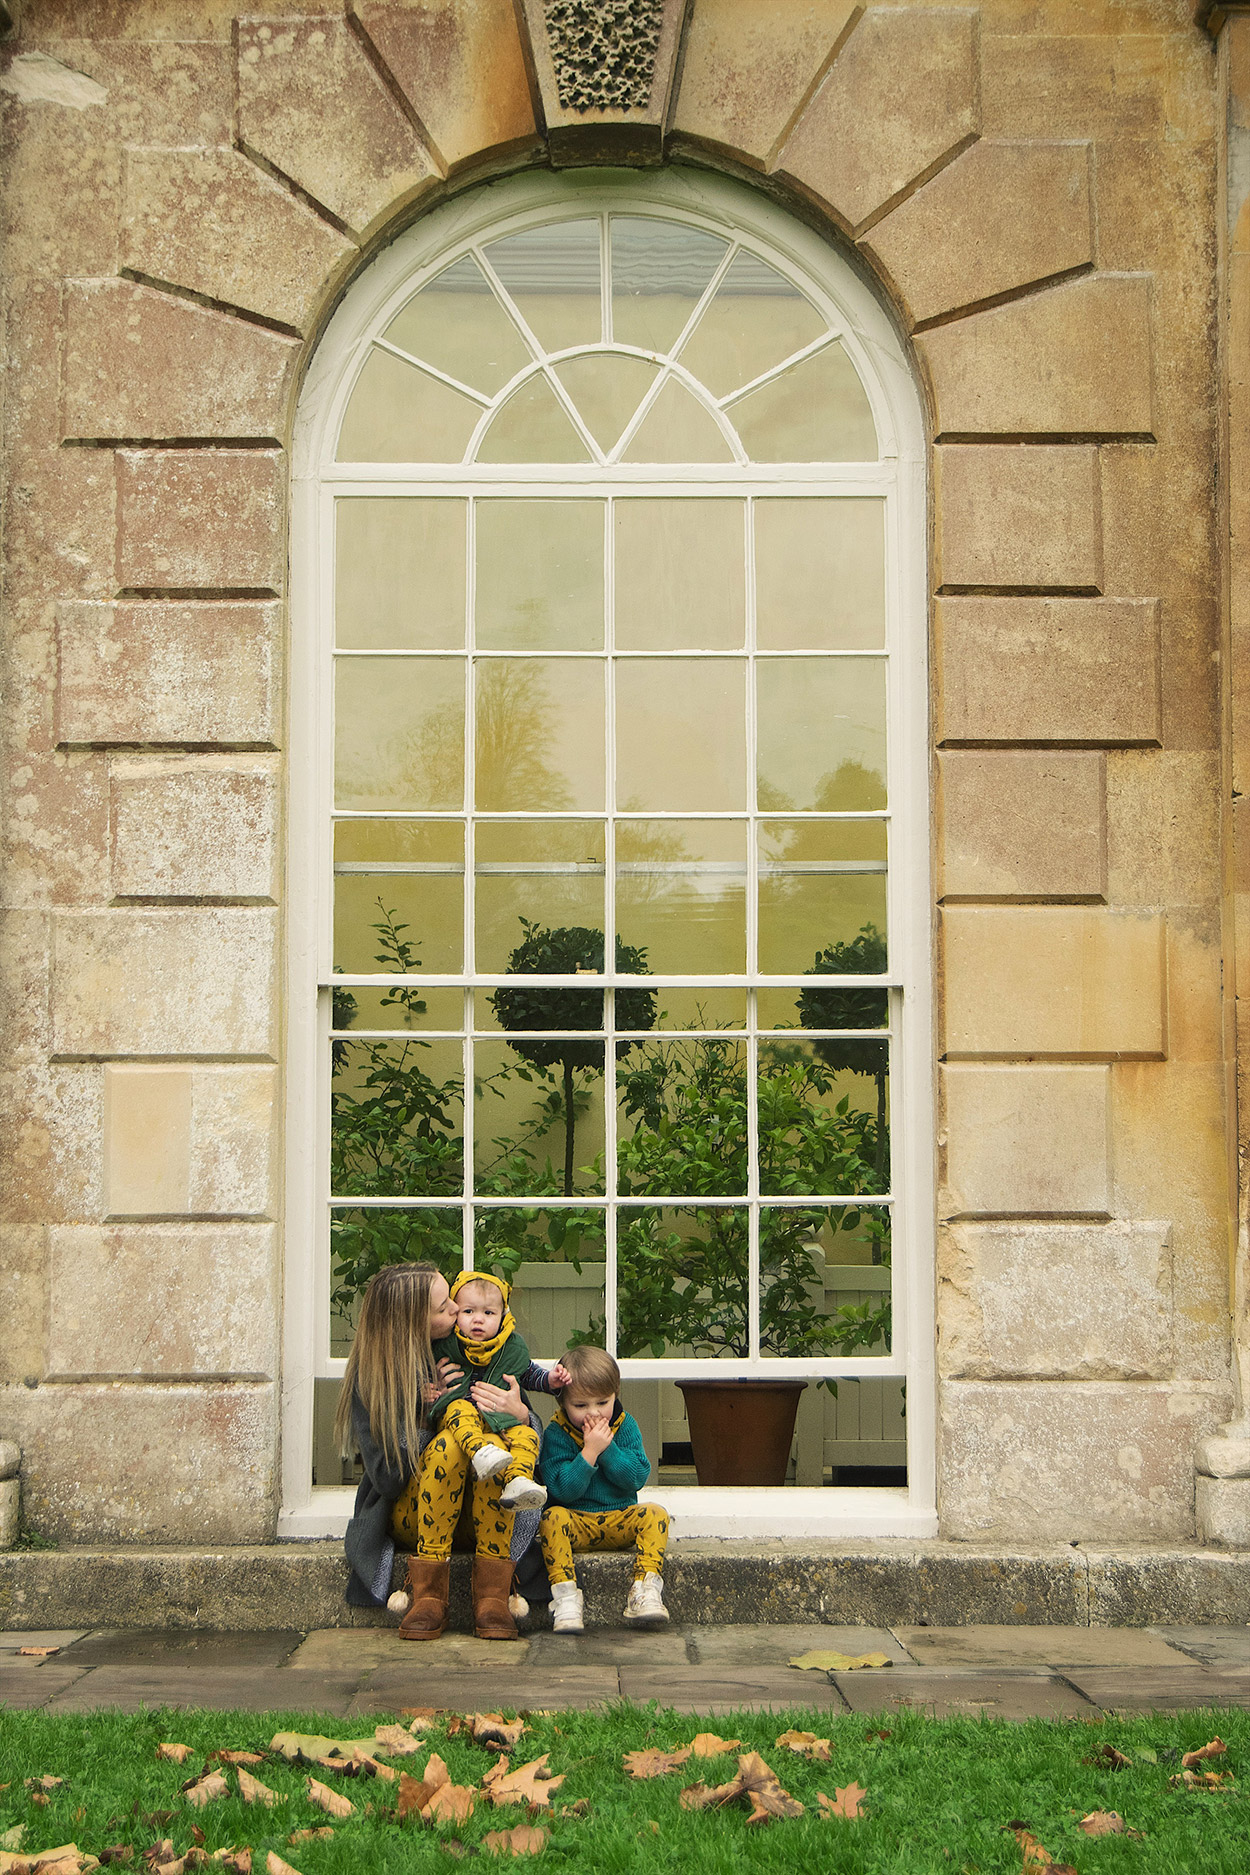 Mum and two young sons wearing twinning mustard acorn leggings posing outside the large orangery window together at Dyrham Park, Bath